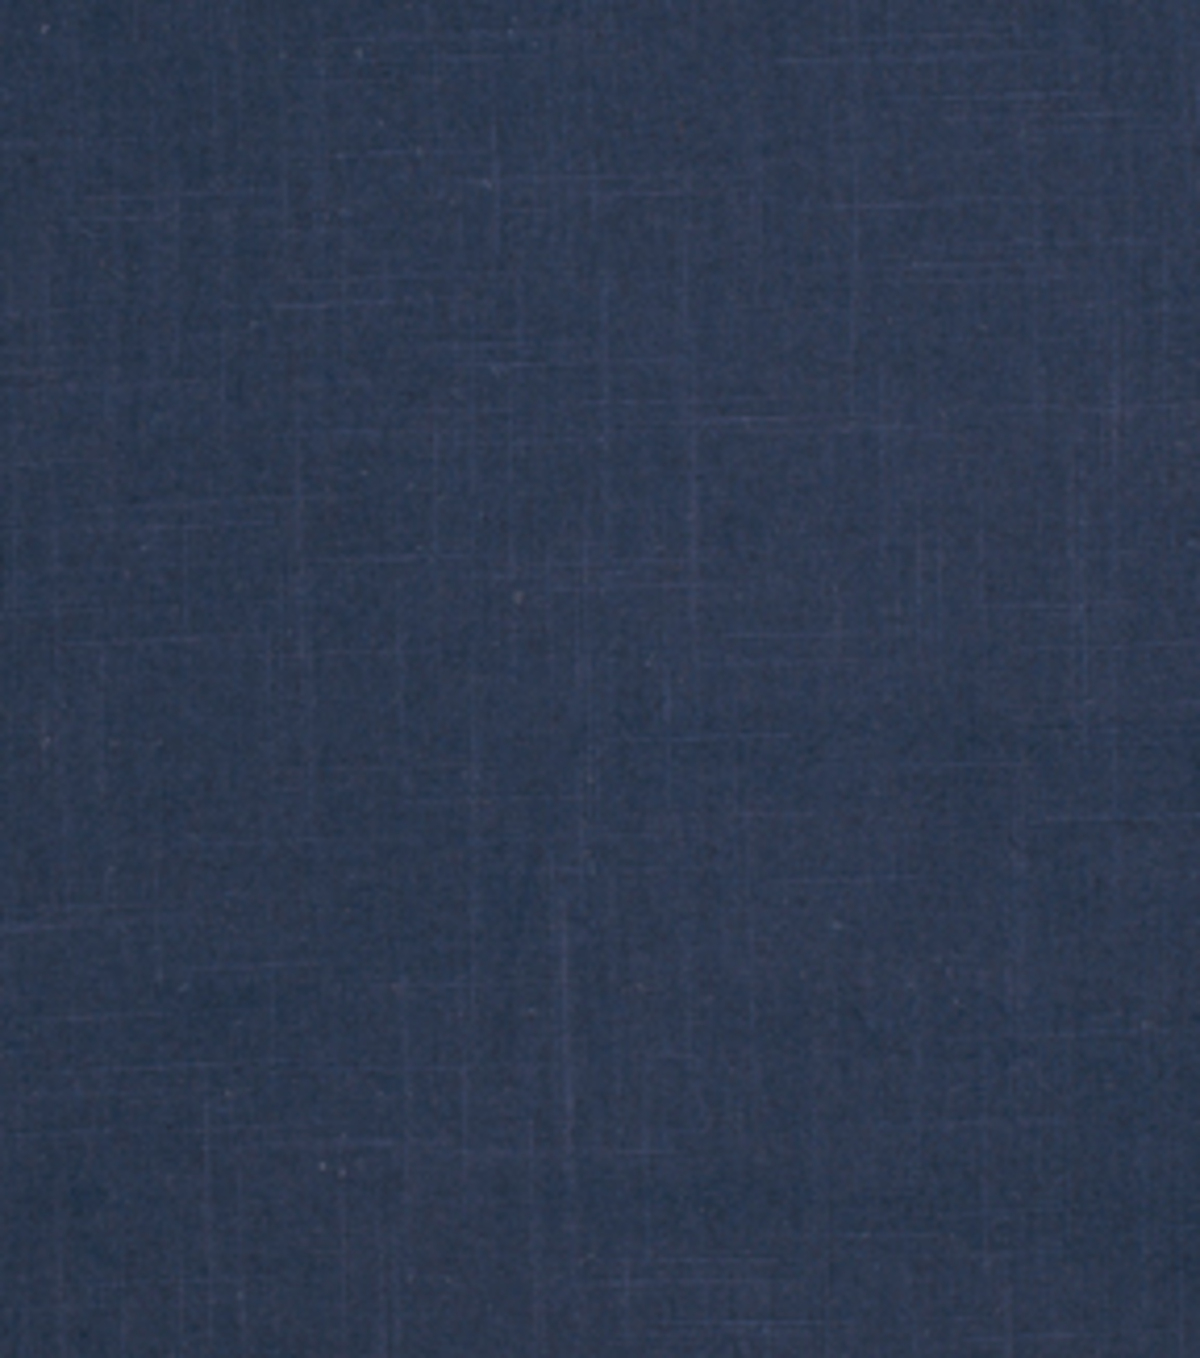 Home Decor 8\u0022x8\u0022 Fabric Swatch-SMC Designs Ohio Navy